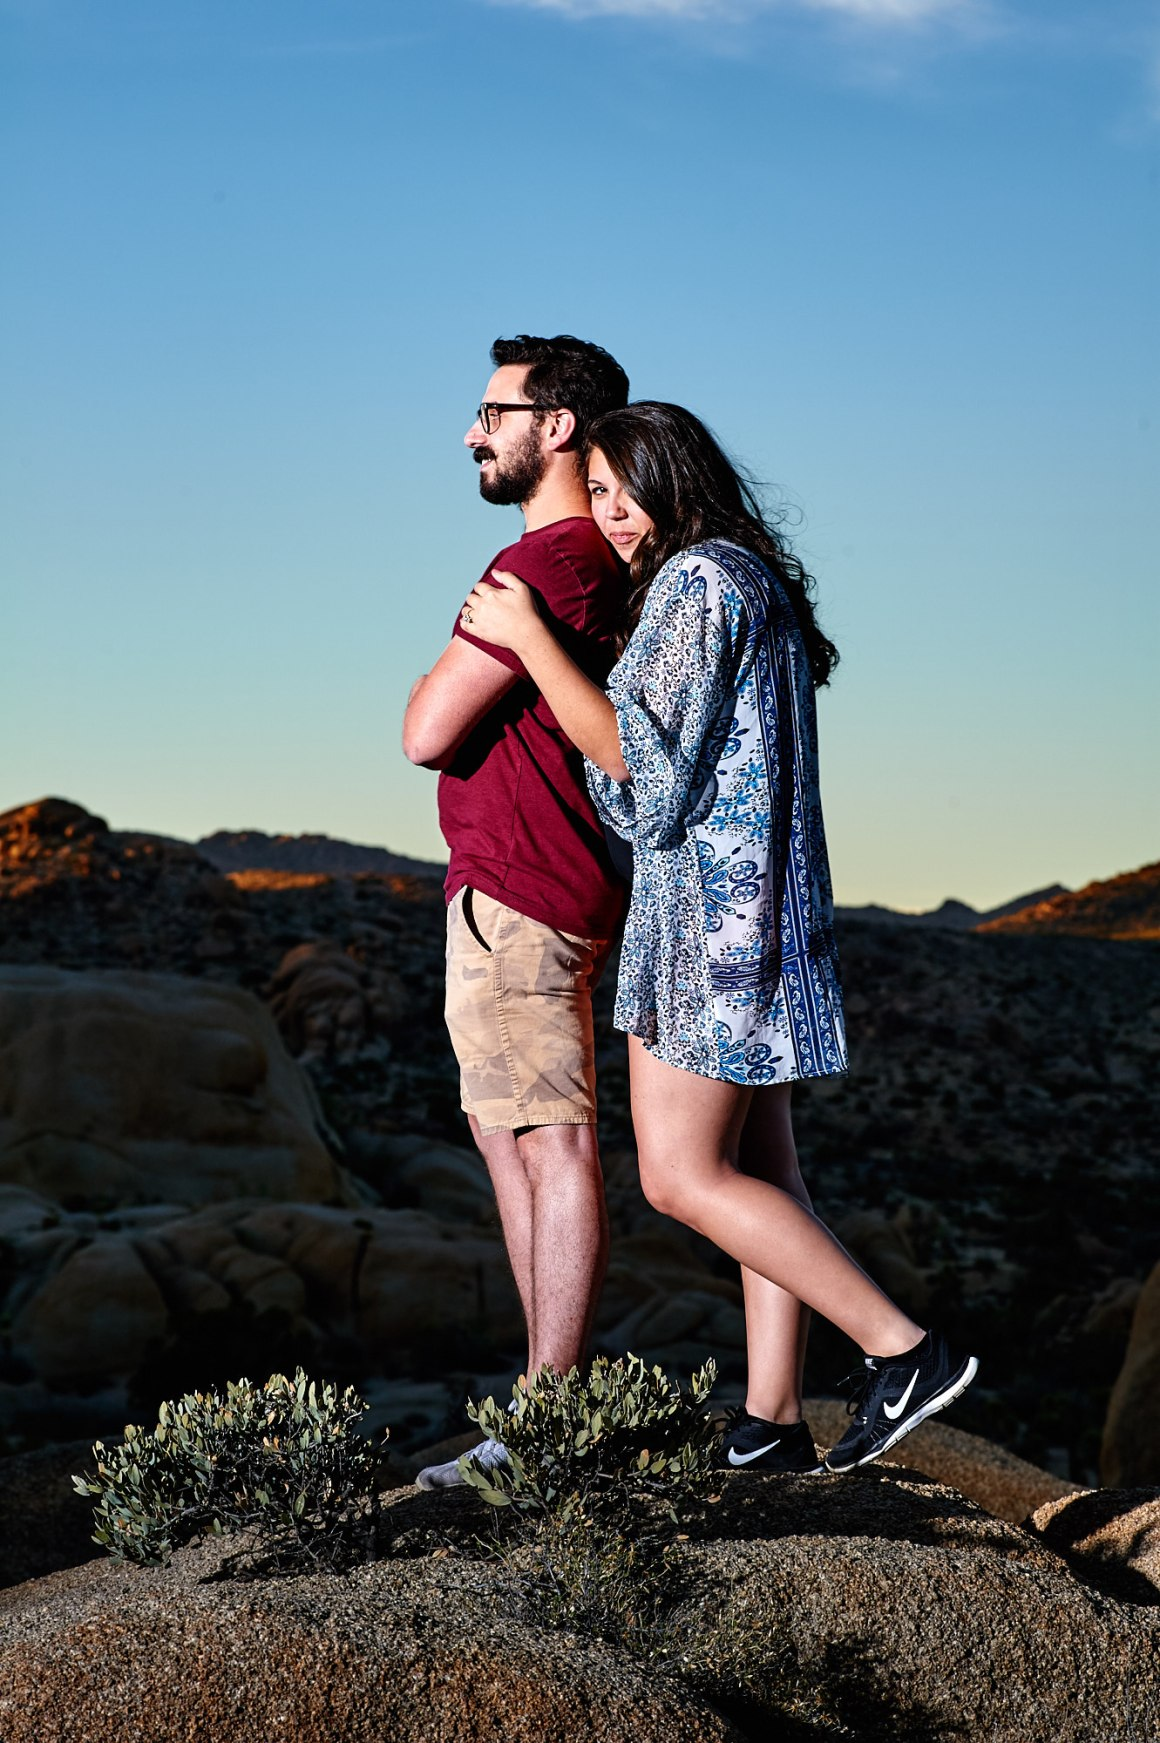 taylor-and-alex-joshua-tree-adventure-engagement-highlights-002